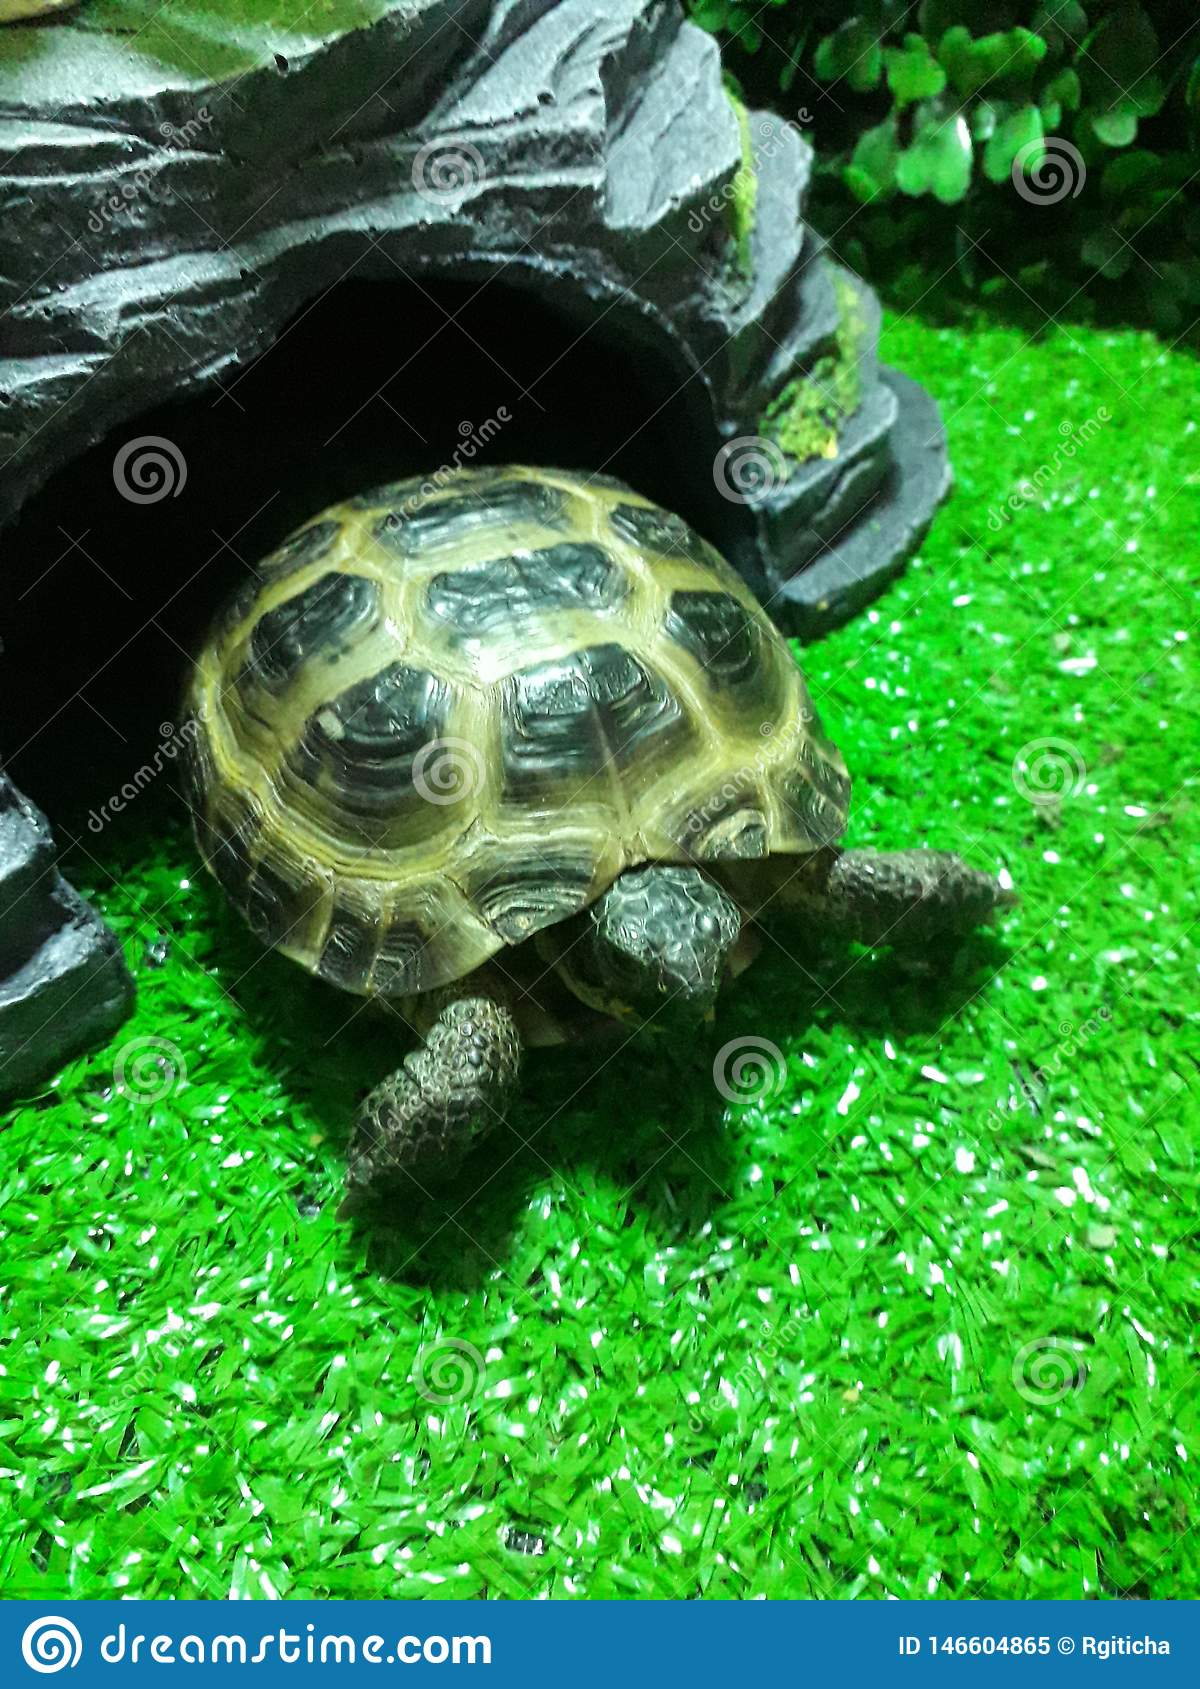 Bright green turtle of Central Asia stands in a terrarium